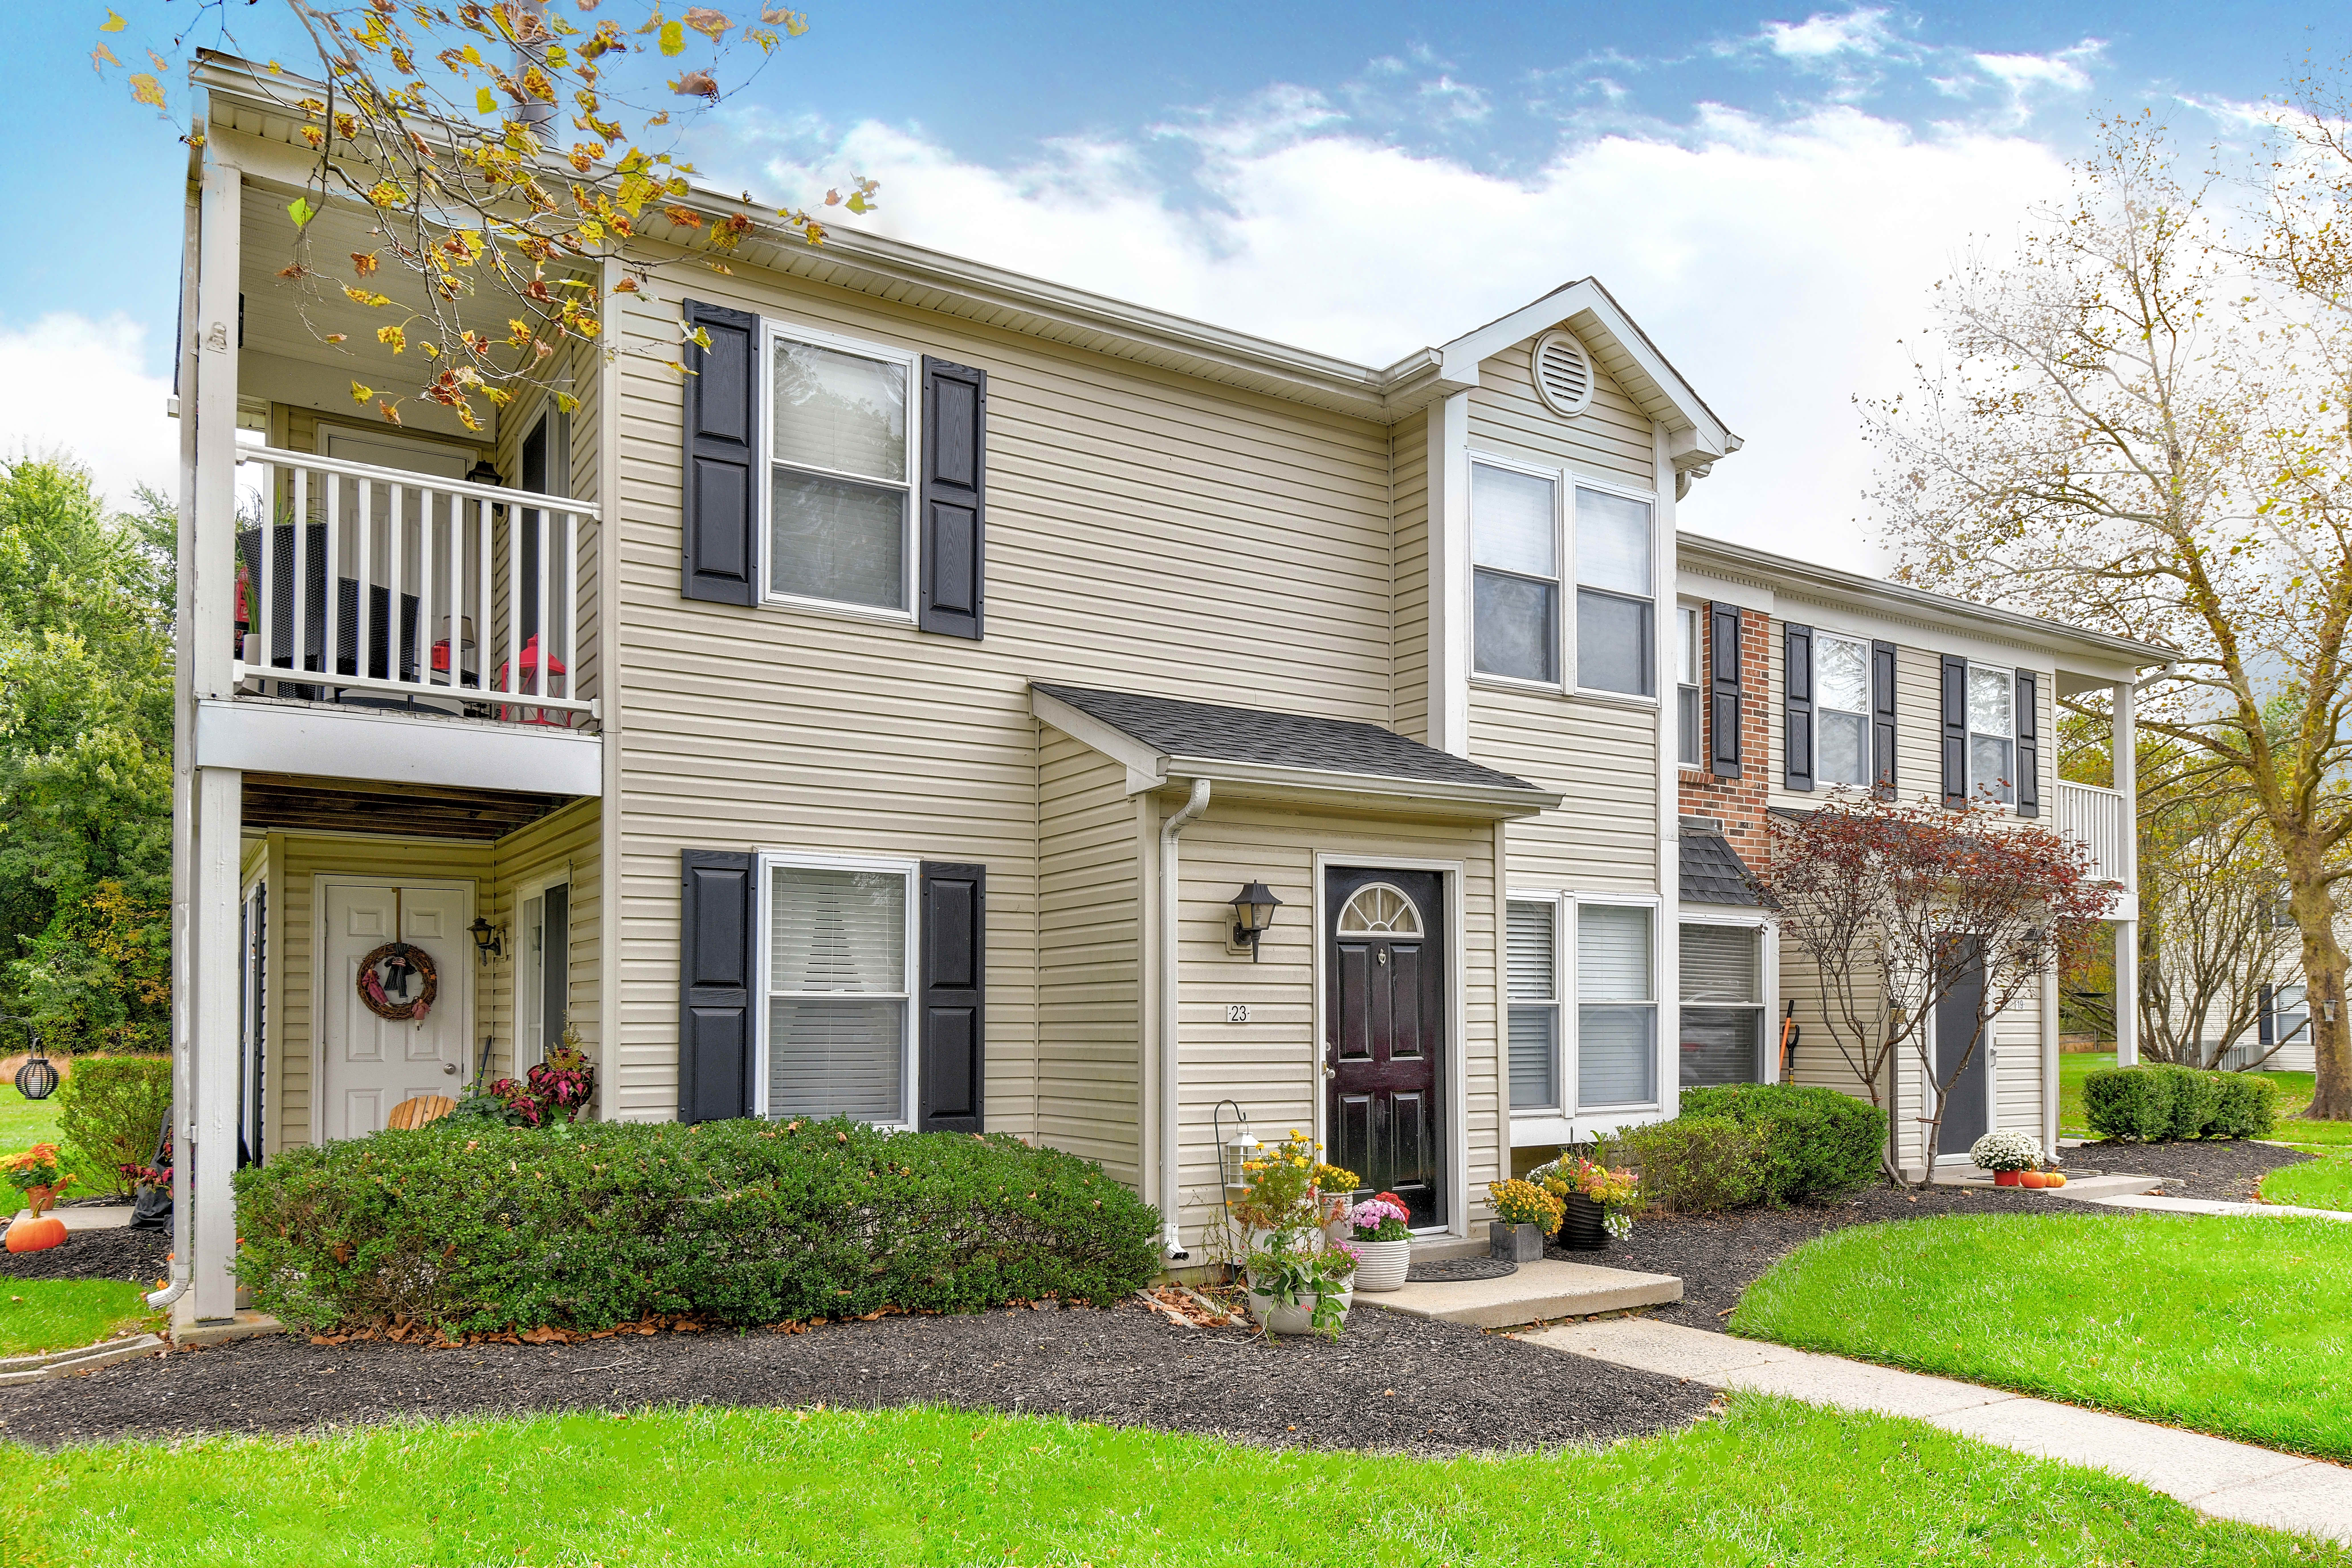 Apartments Near DelVal Wynmere Chase for Delaware Valley College Students in Doylestown, PA